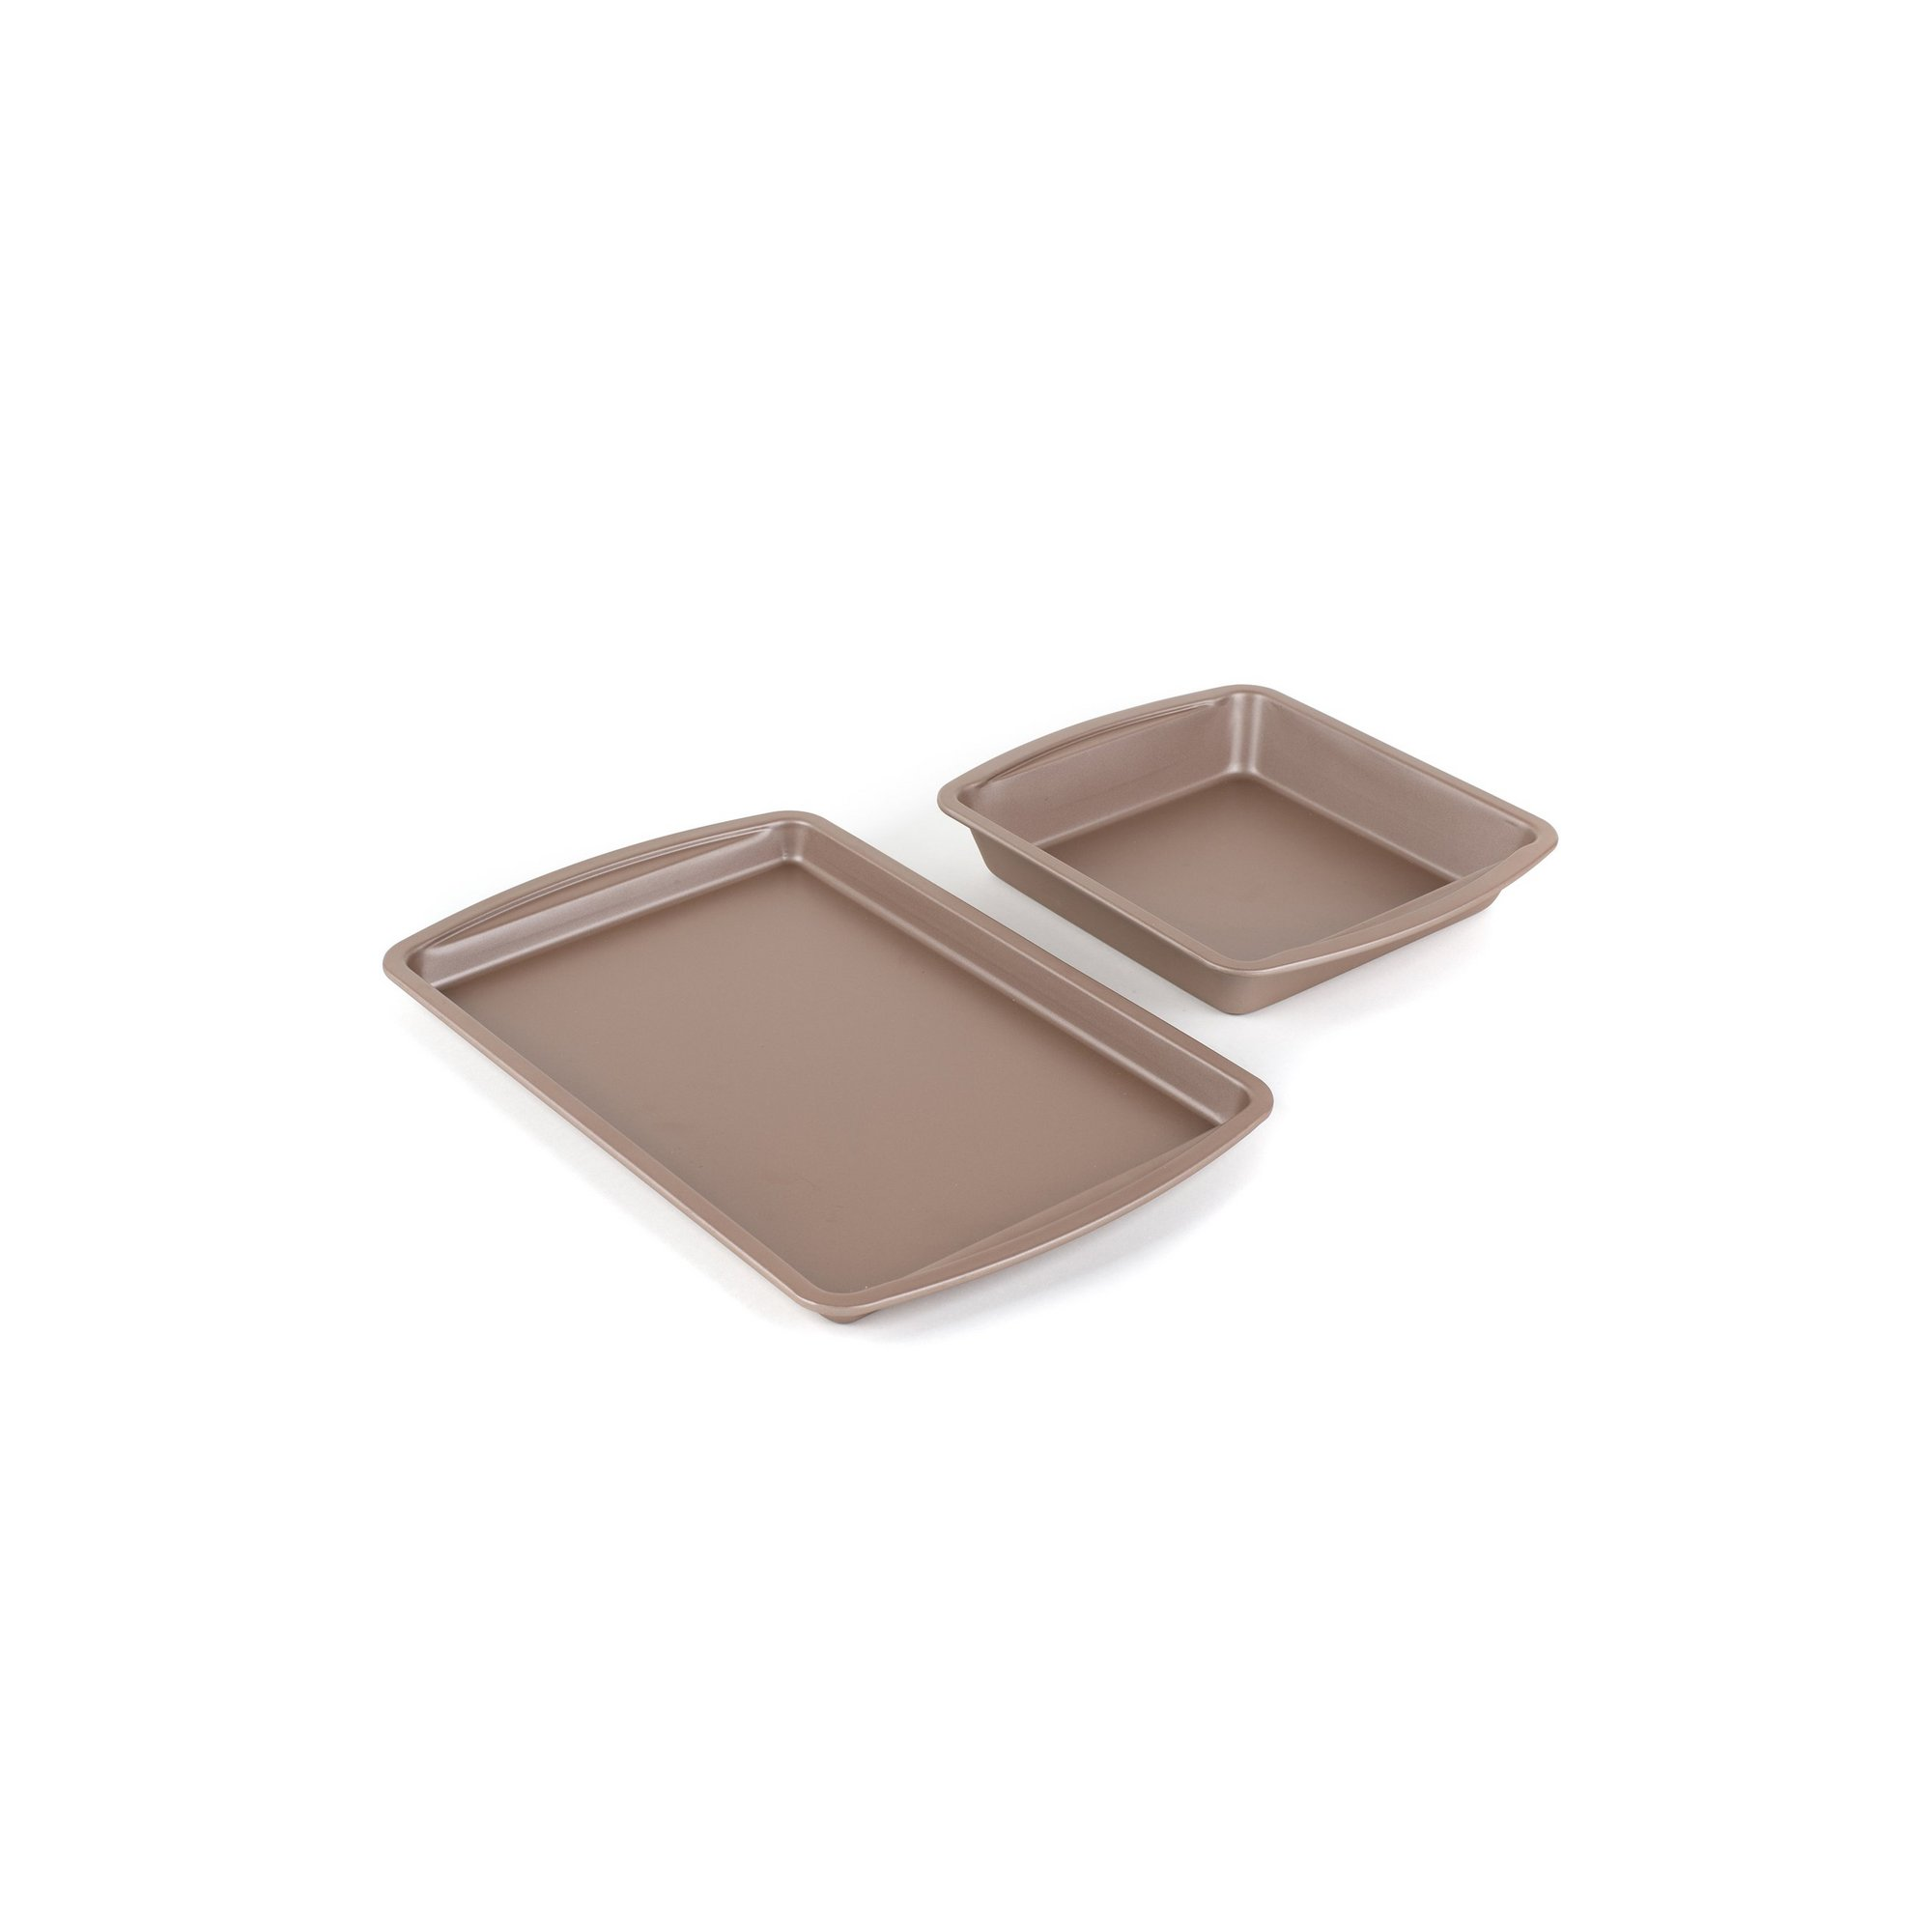 Image of 2 Piece Salter Oven Tray Combo Set